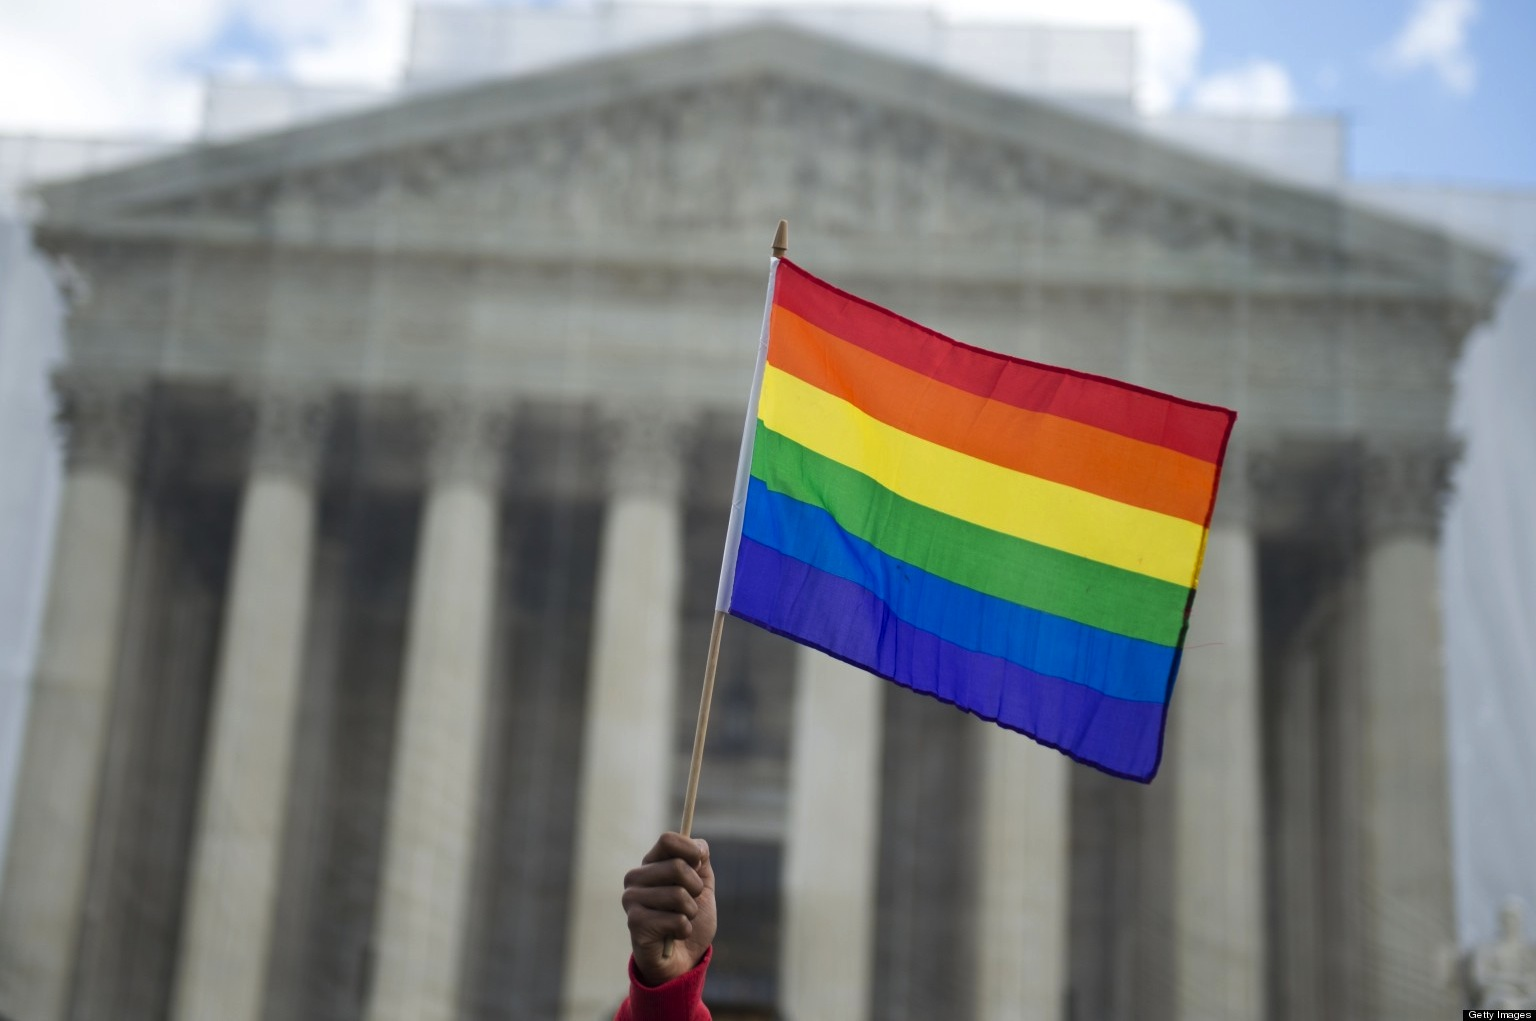 an argument against the ban on same sex marriage in the united states of america The wedding cake case before the supreme court signals a shift in status for  evangelicals  resistance to gay rights was one of the christian right's earliest  and  invalidated the state's ban on same-sex marriage in 2003, christian   religious groups view discrimination against christians and muslims.